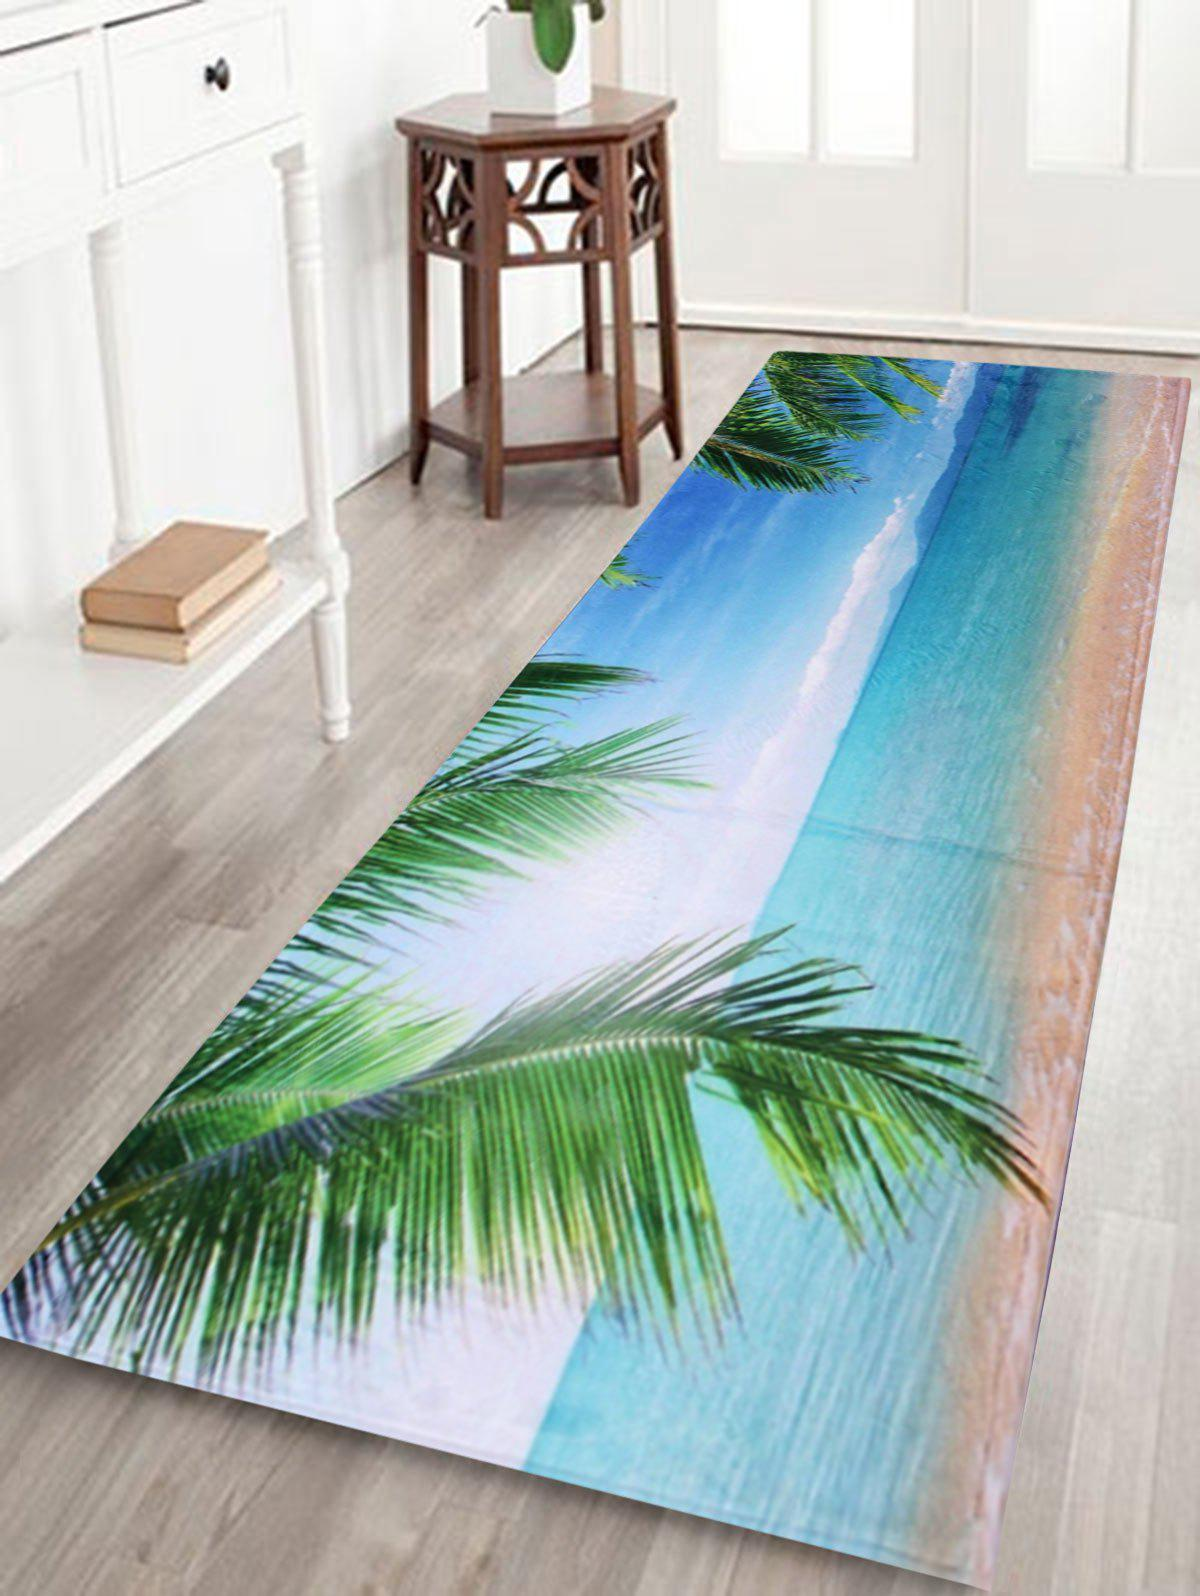 Beach Landscape Coral Velvet Long Bathroom RugHOME<br><br>Size: W24 INCH * L71 INCH; Color: AZURE; Products Type: Bath rugs; Materials: Coral FLeece; Pattern: Scenic; Style: Beach Style; Shape: Rectangle; Package Contents: 1 x Bath Rug;